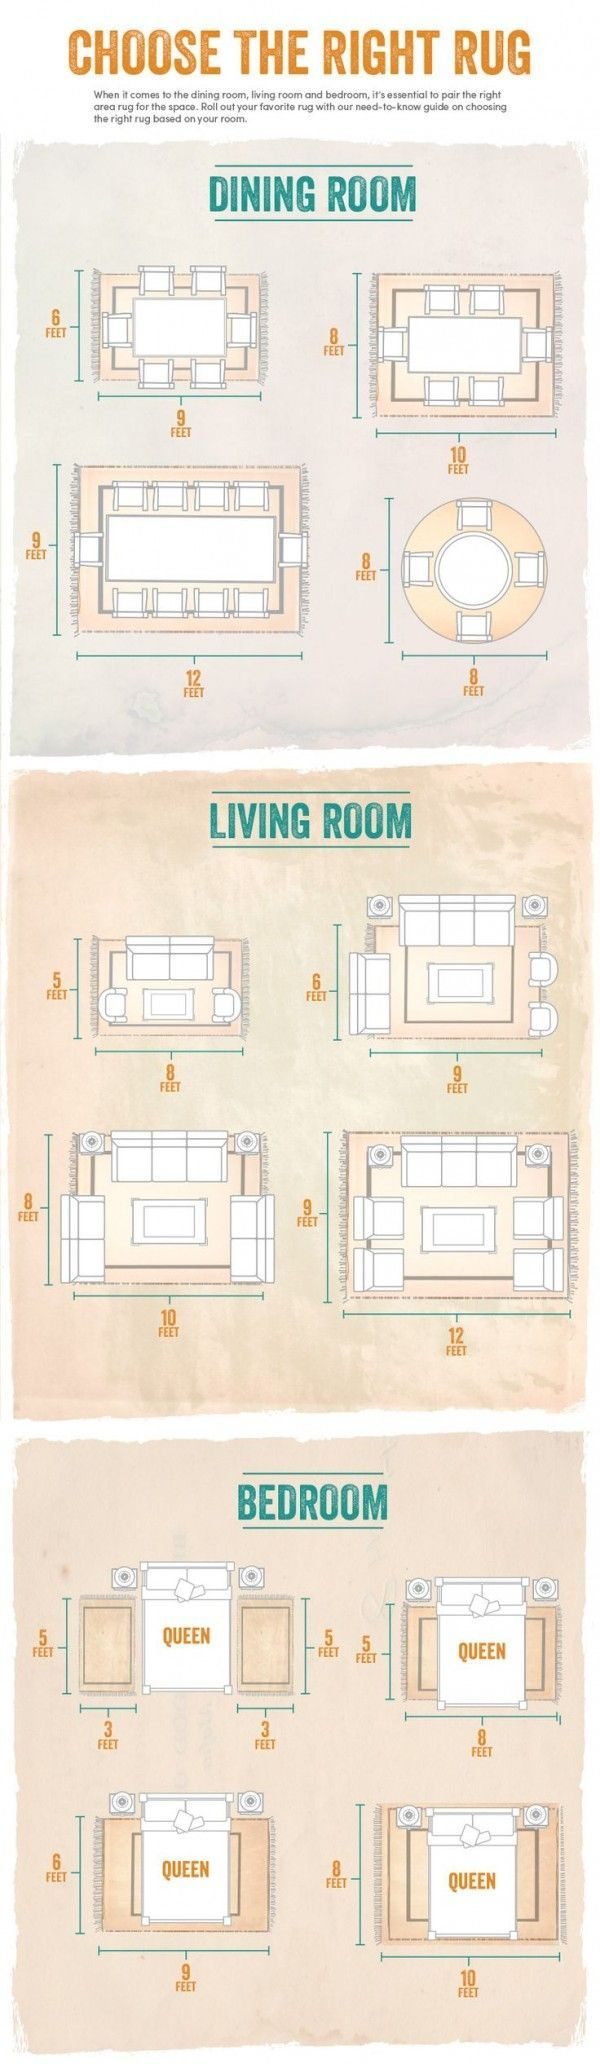 25 best ideas about rug size guide on pinterest rug placement rug size and room size rugs. Black Bedroom Furniture Sets. Home Design Ideas